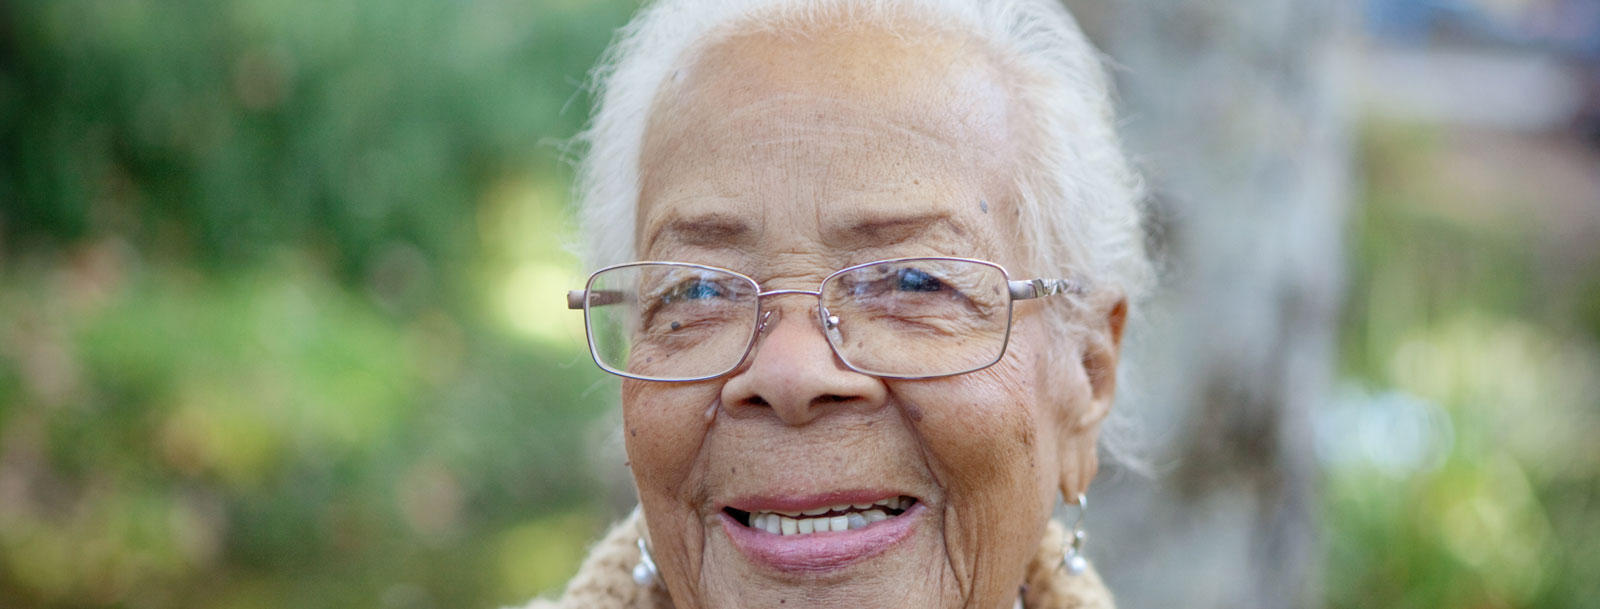 Senior living facility in Rolla offers memory care